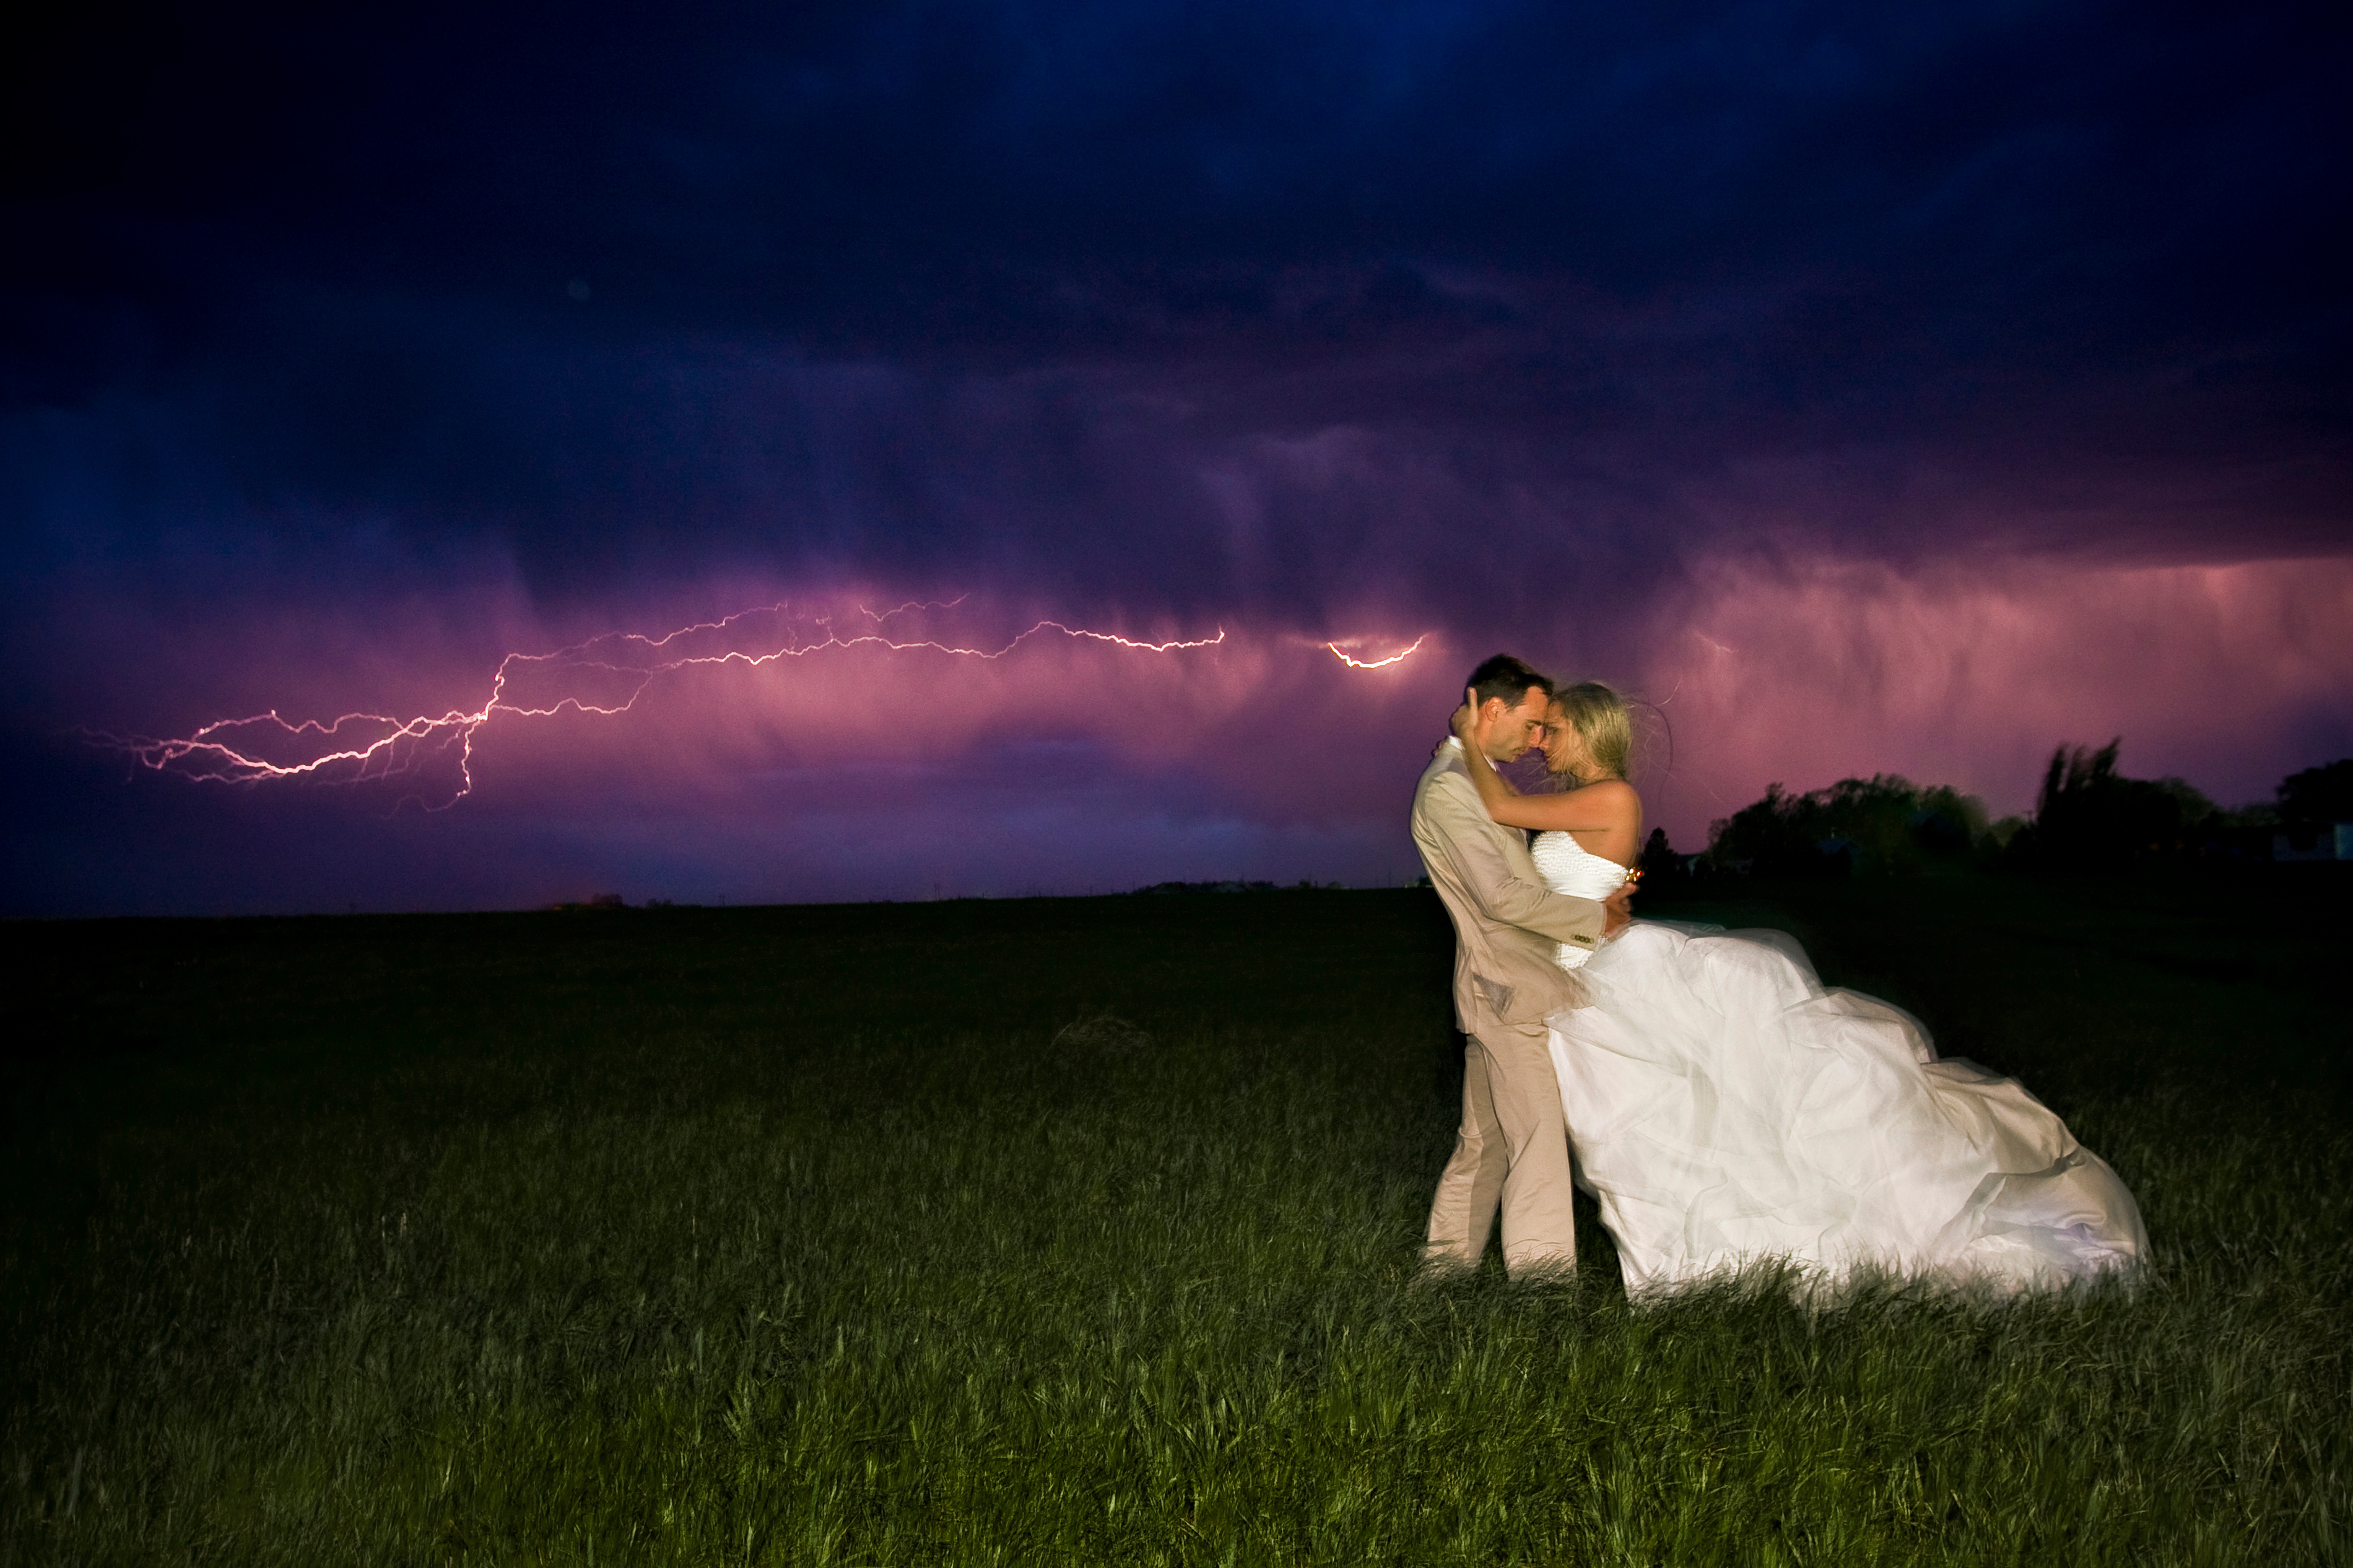 Bride in Groom with lightning in the distance.